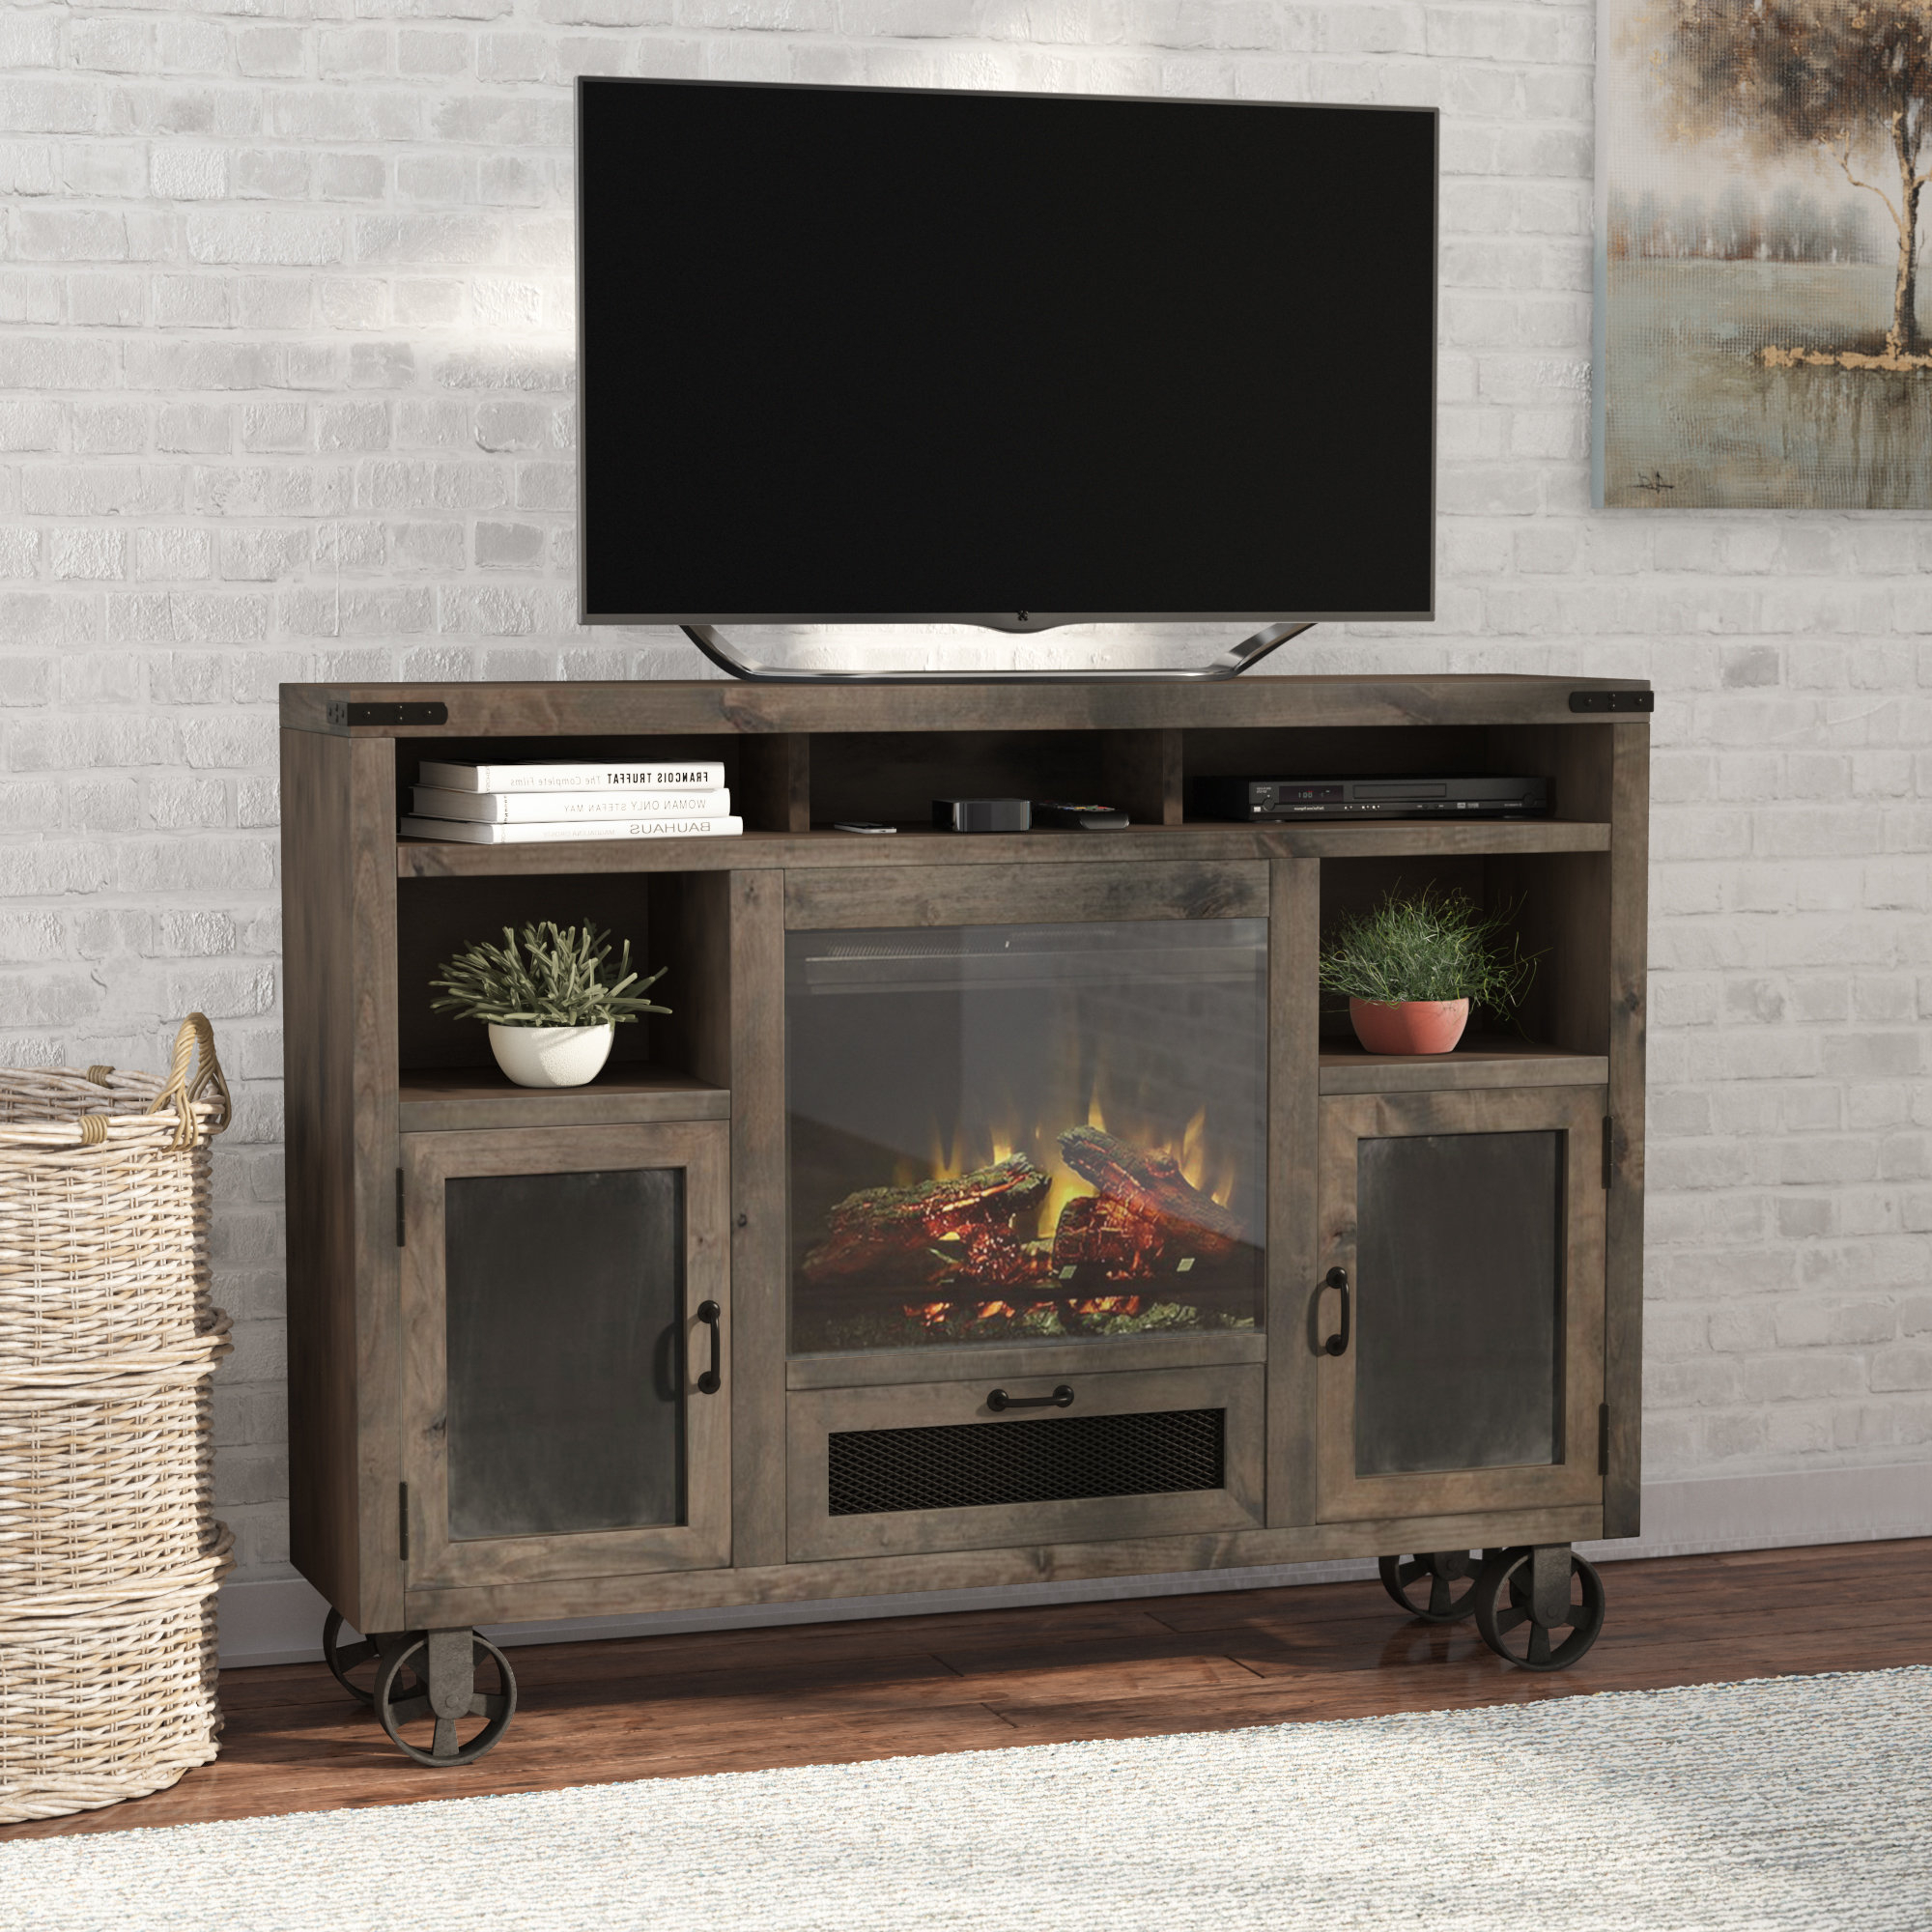 Tv Stands With Back Panel For Well Known Tall Tv Stands You'll Love (View 9 of 20)